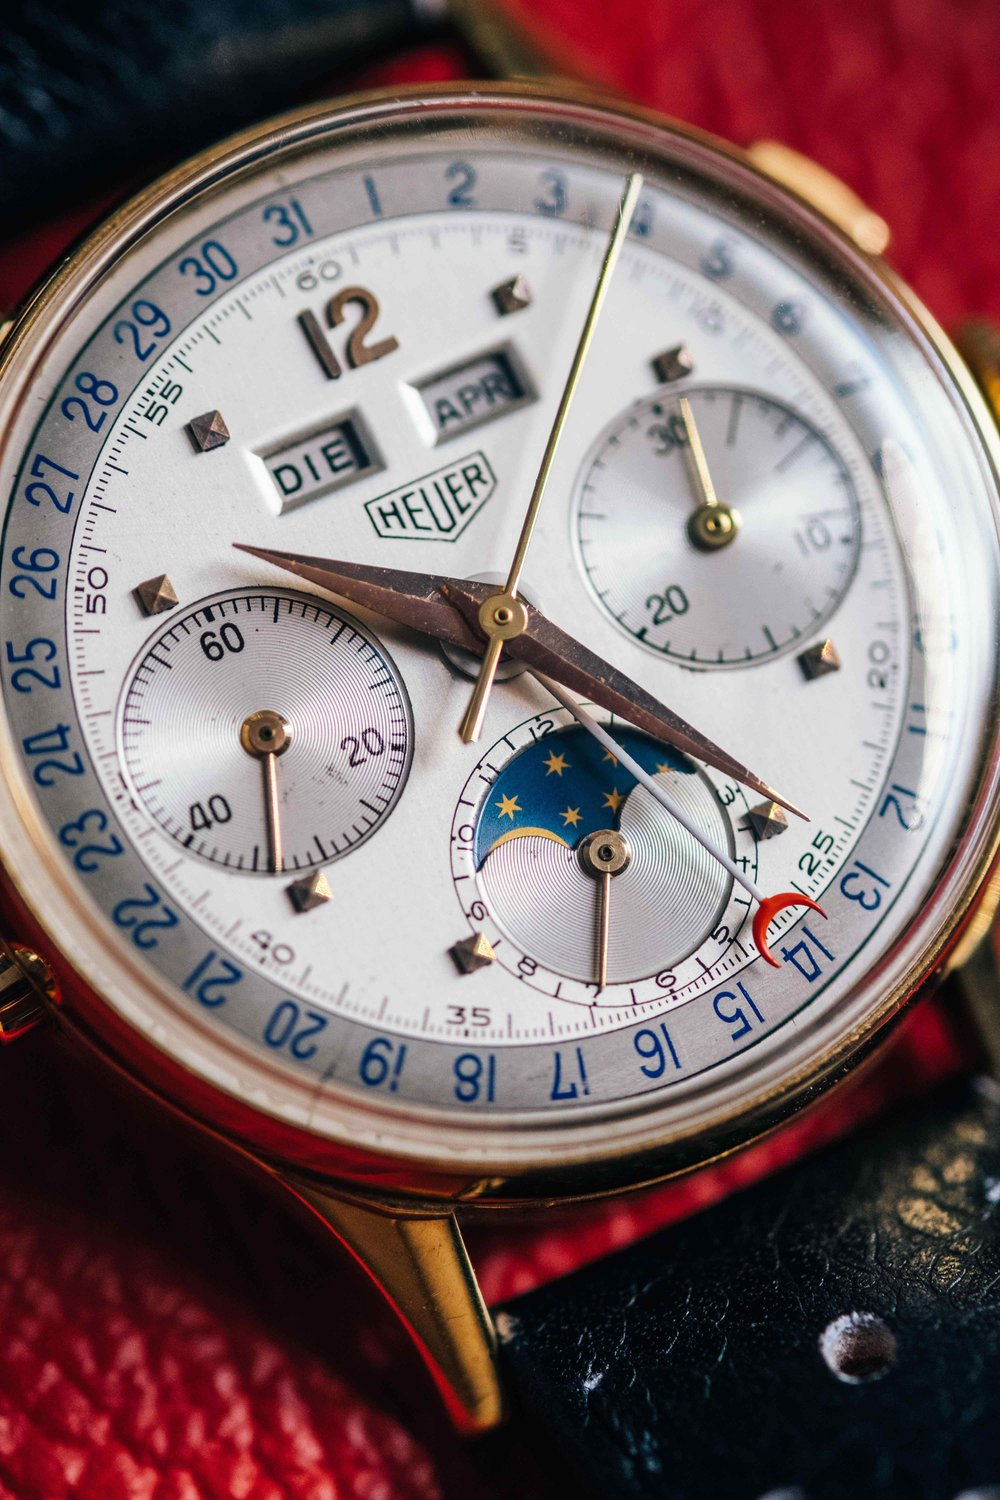 TAG Heuer Globetrotter Genève_Chronograph Triple Calendar with Moonphase (1).jpg